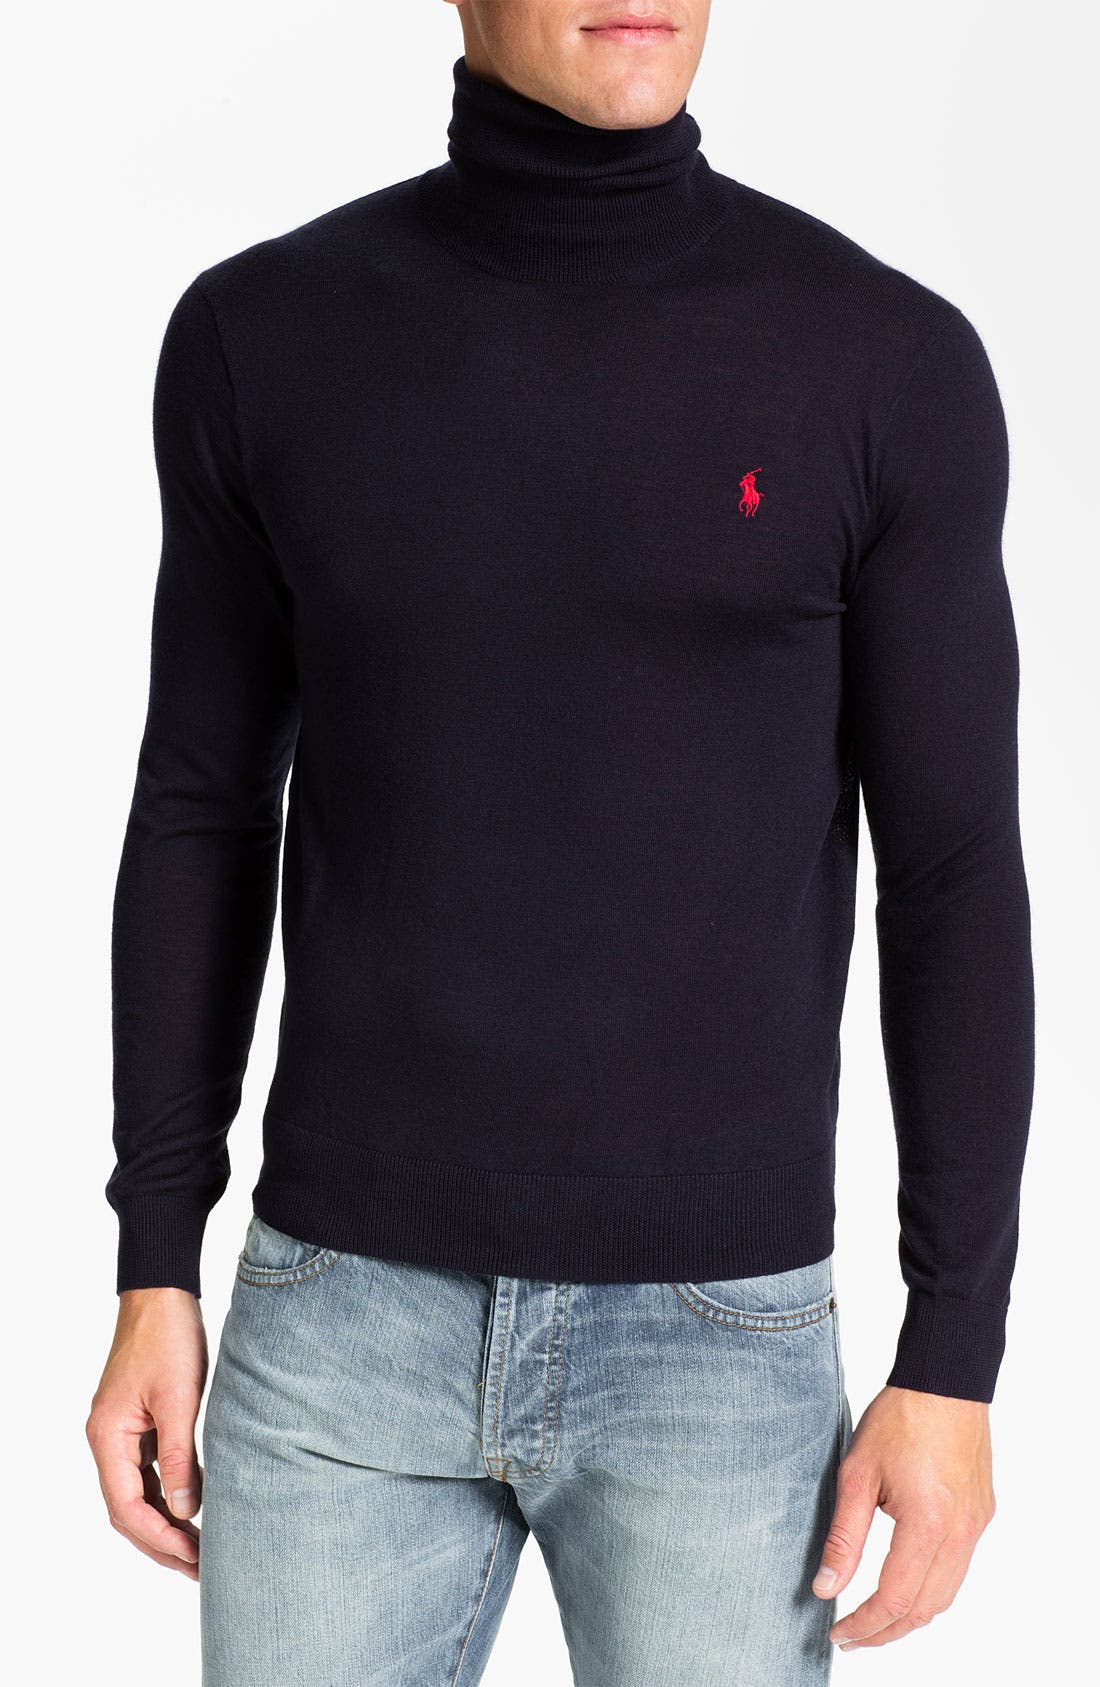 Alternate Image 1 Selected - Polo Ralph Lauren Classic Fit Merino Wool Turtleneck Sweater